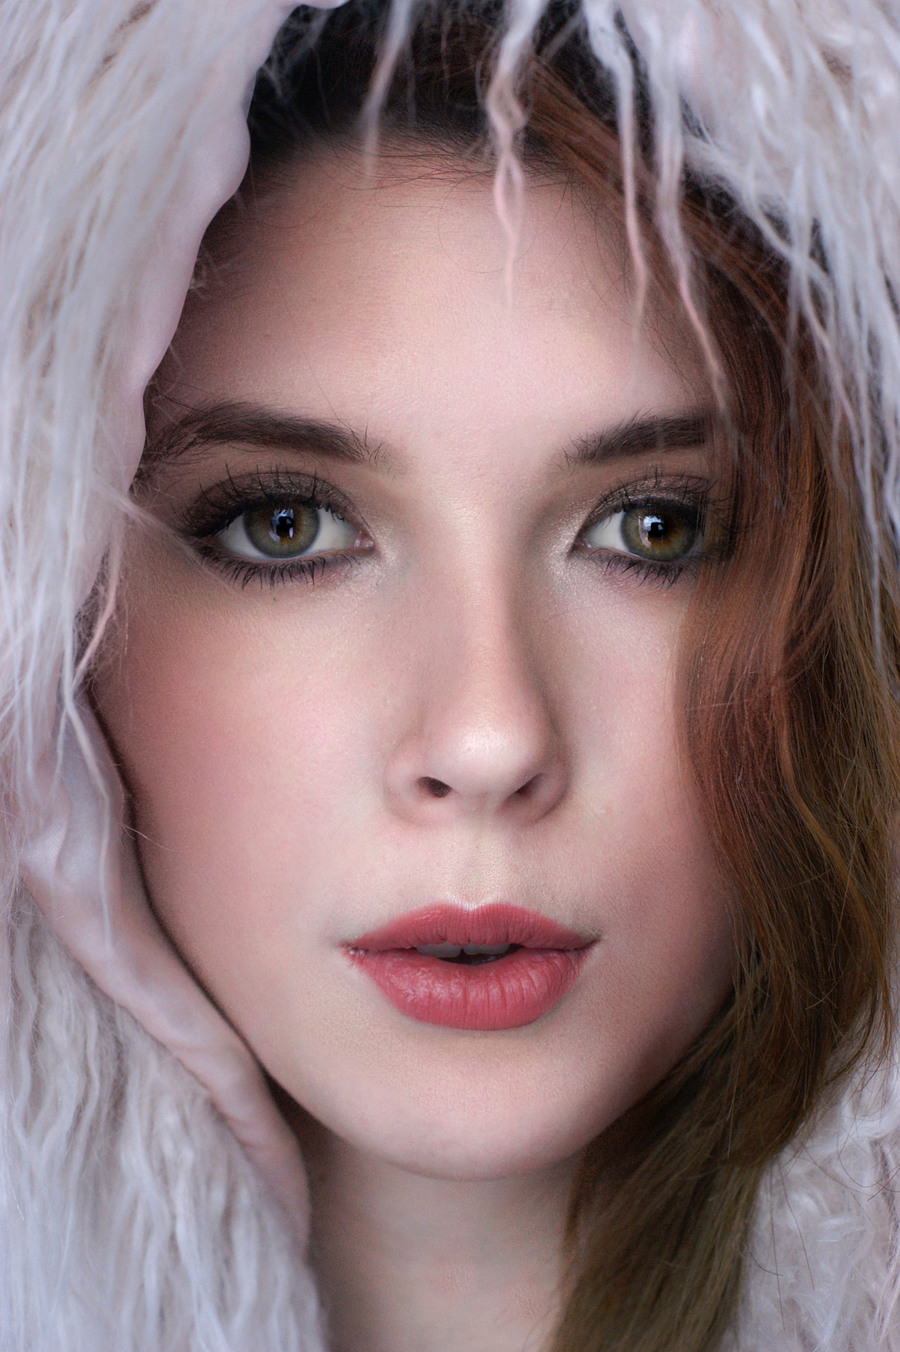 Hannah Eyes / Photography by ASBphotography, Model Twinkle Nose (Hannah Aisling) / Uploaded 6th April 2019 @ 02:30 PM